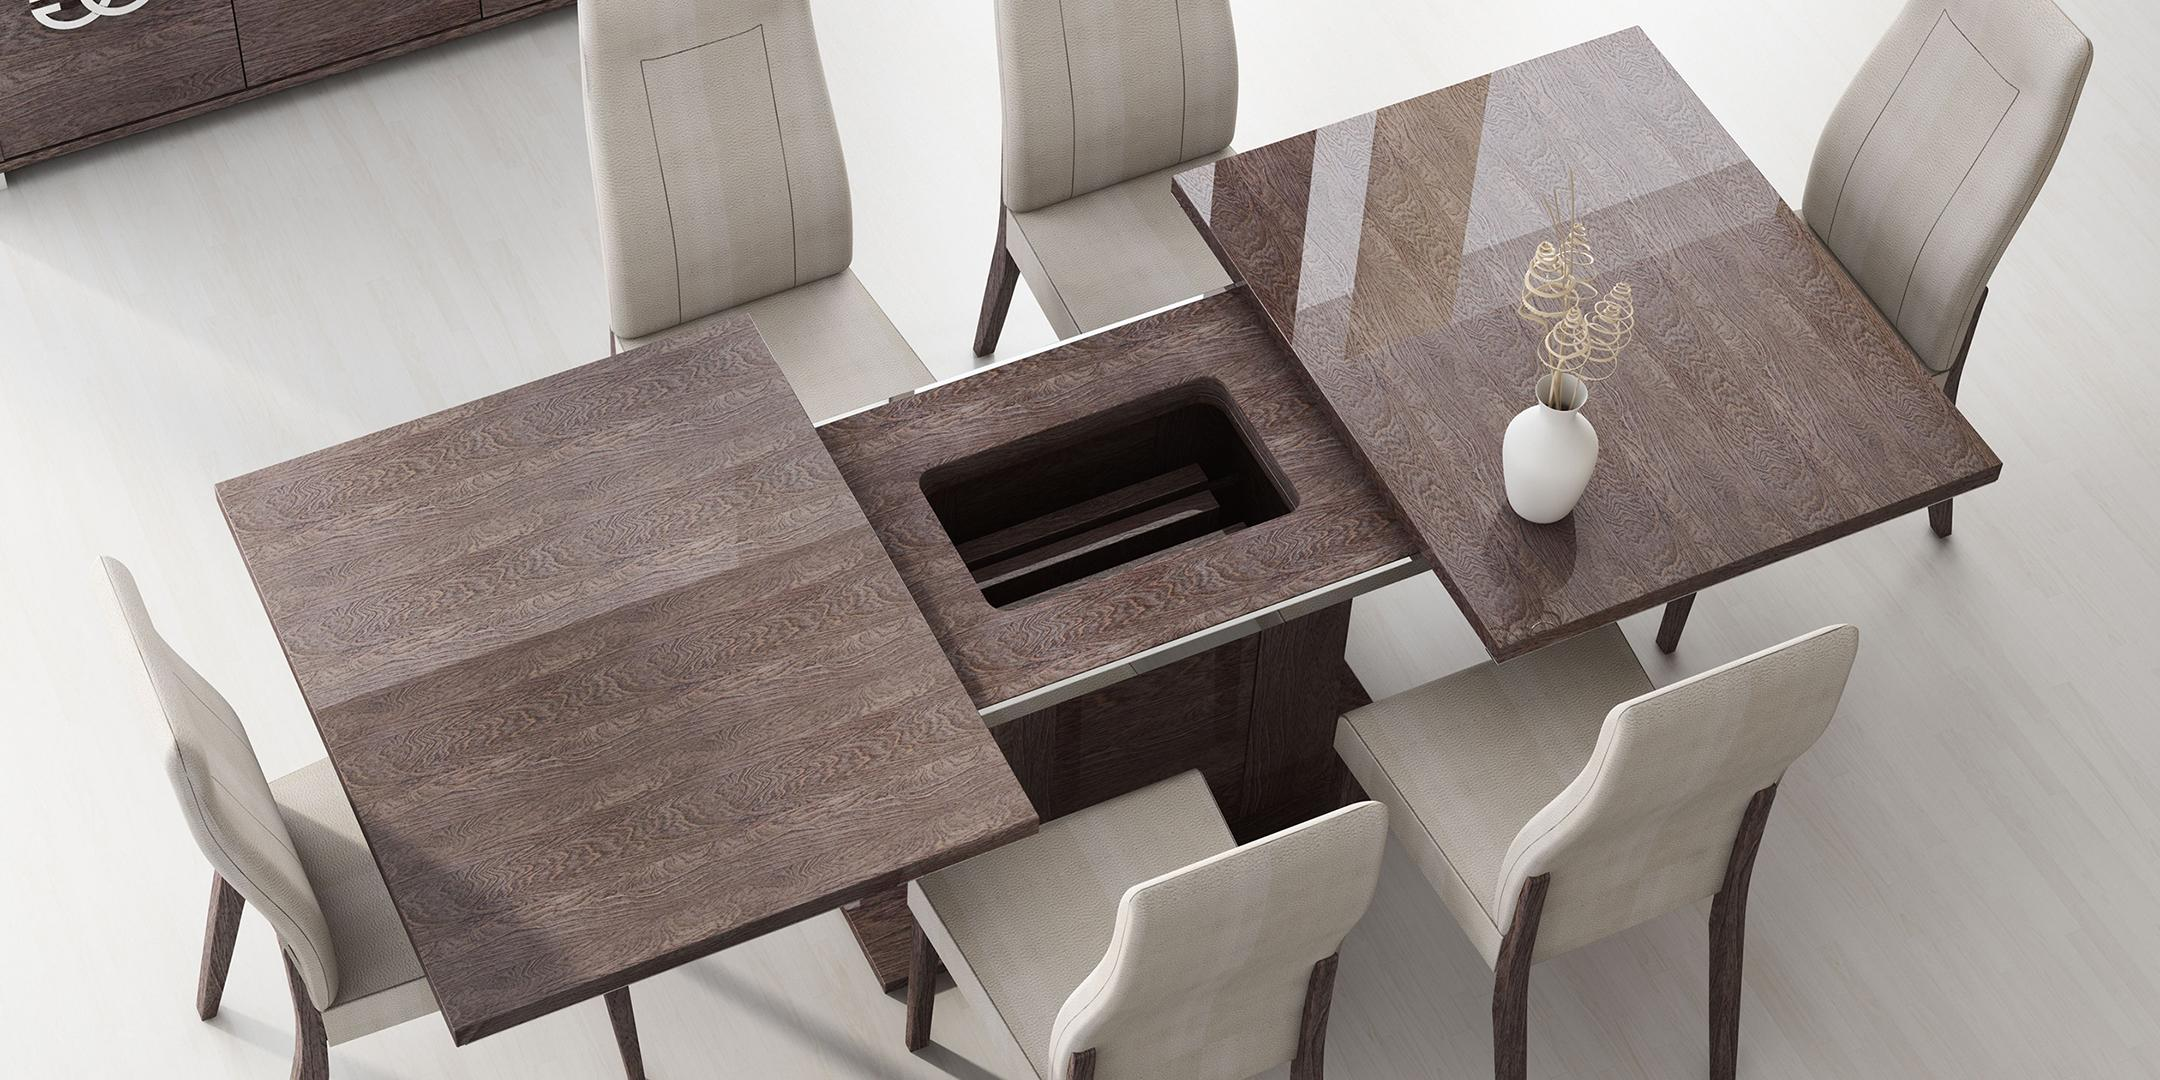 ESF Georgia High Gloss Wenge Dining Table Set 9Pcs Contemporary ...